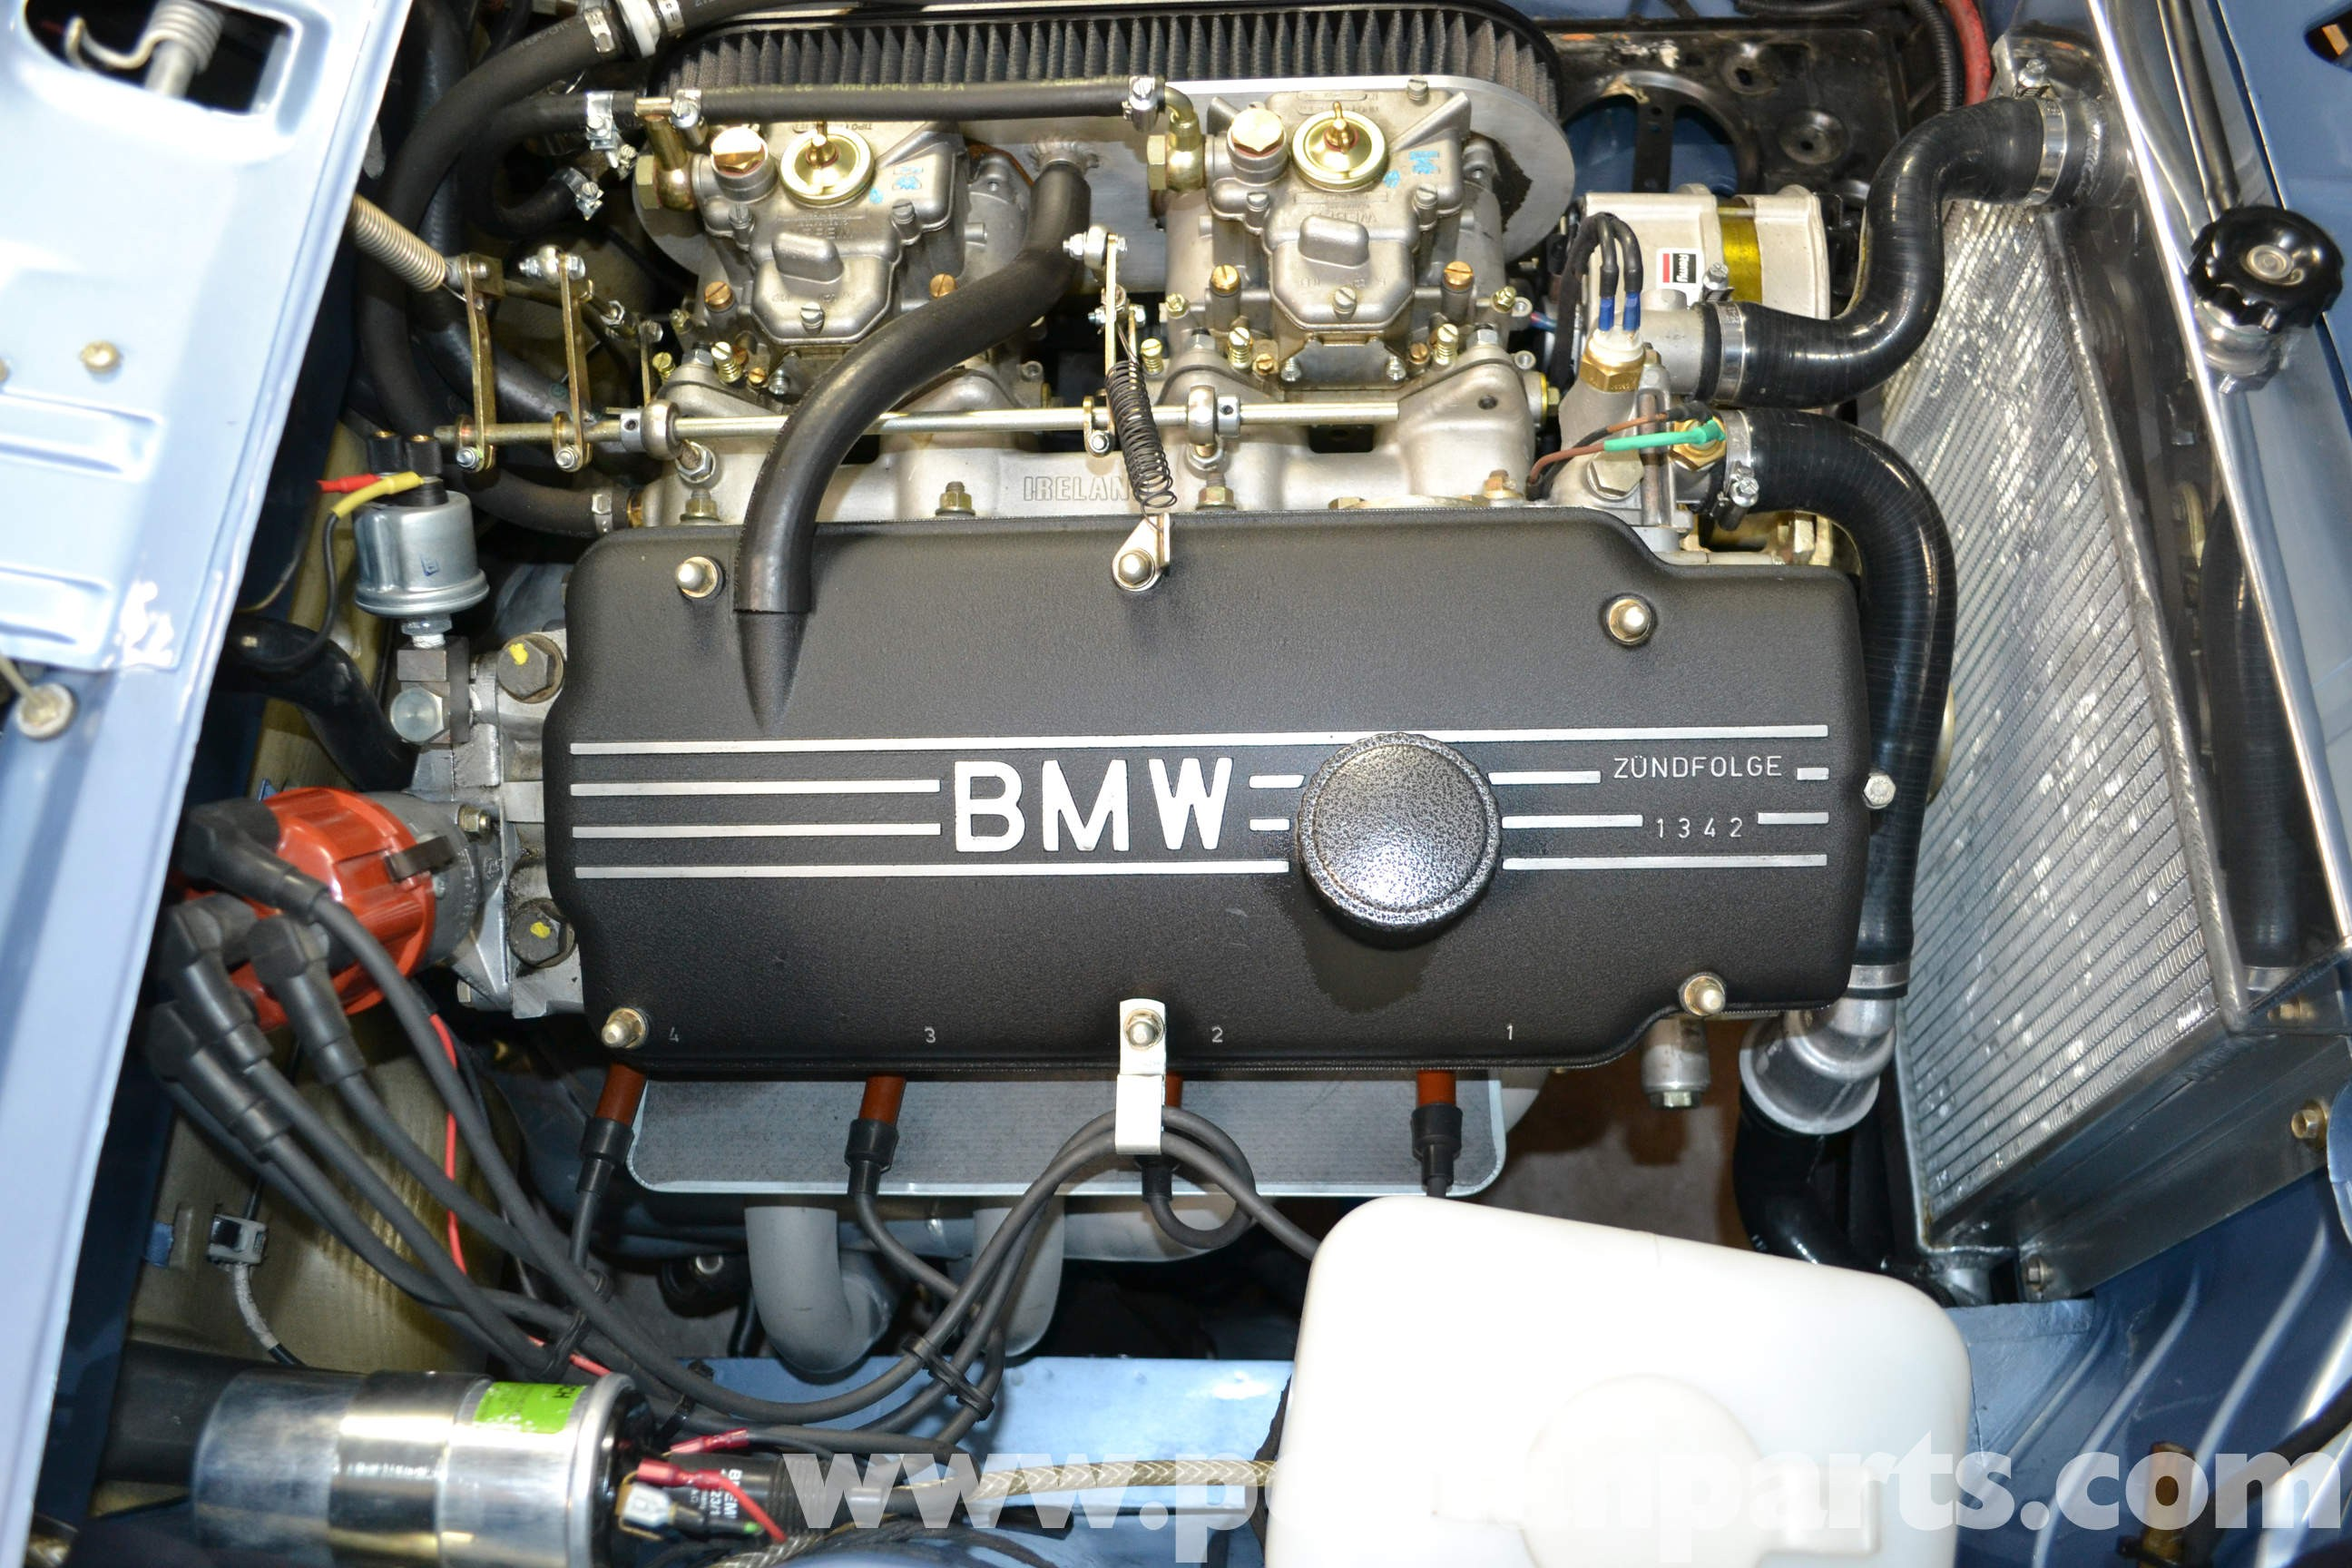 bmw m10 engine diagram bmw 2002 valve cover gasket removal 1966 1976 rh detoxicrecenze com 2002 bmw 325i engine diagram 2002 bmw 745i engine diagram